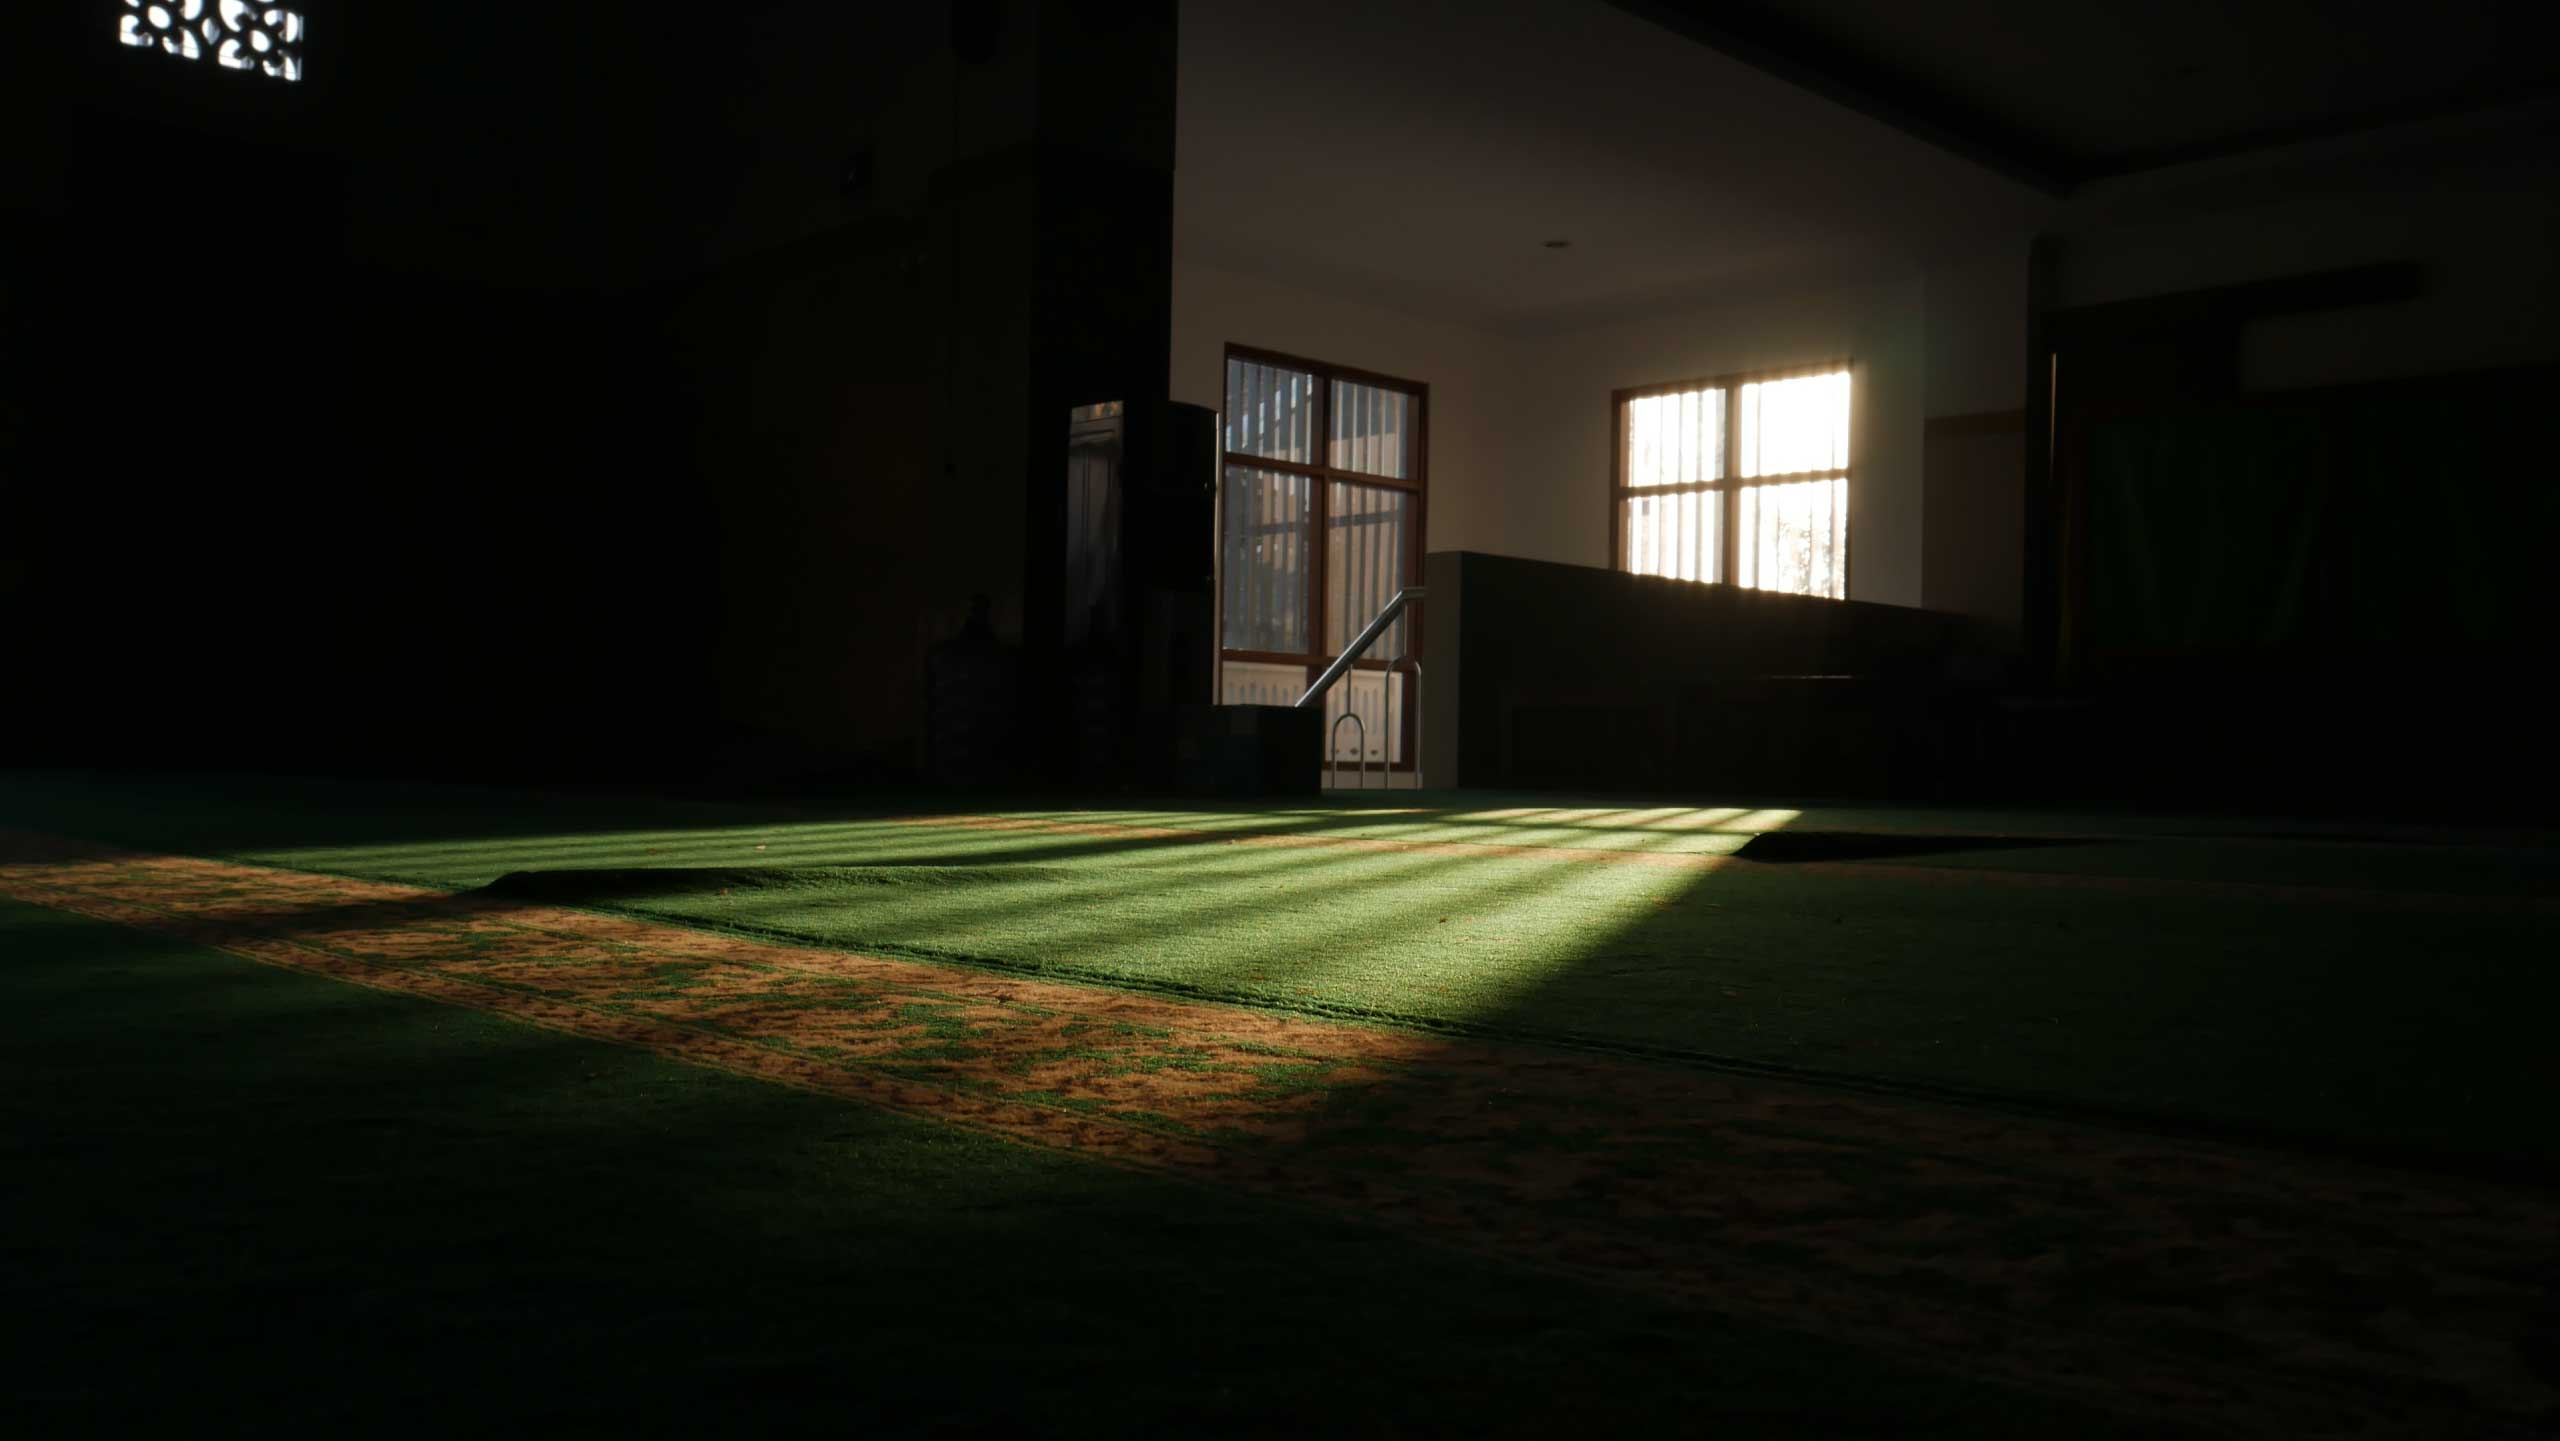 inside mosque with carpet and light coming through window